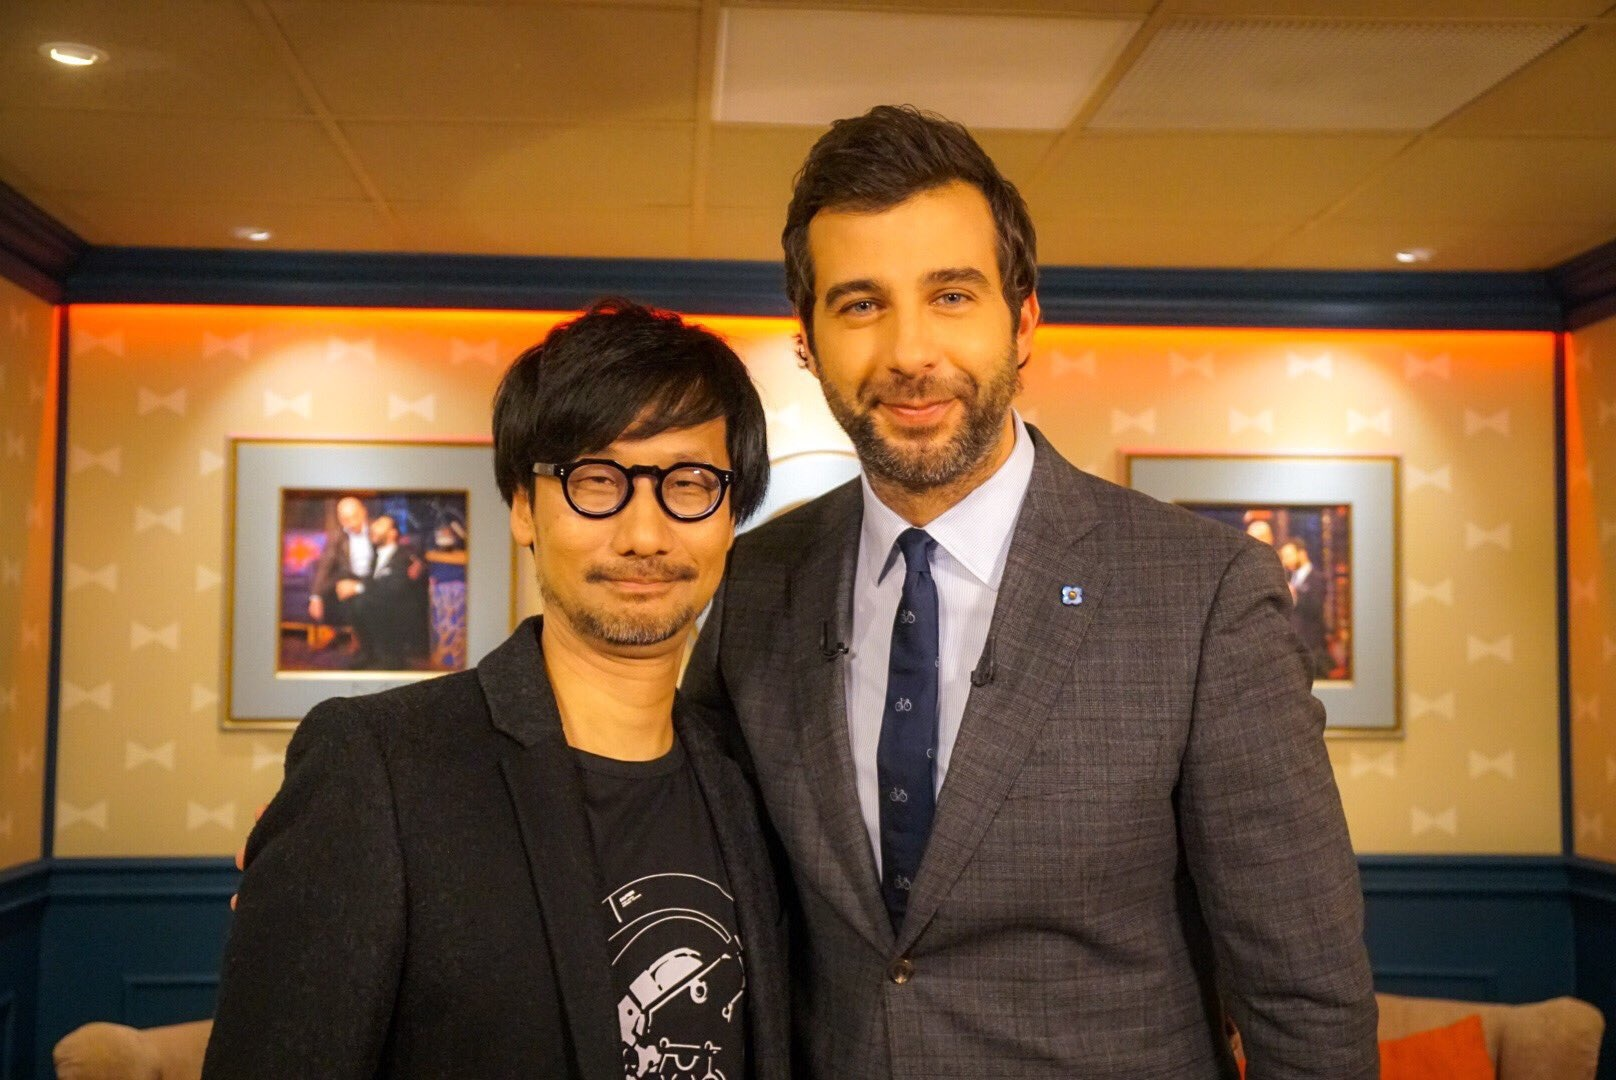 https://xgm.guru/p/world-of-insanity/evening-with-urgant-and-kojima